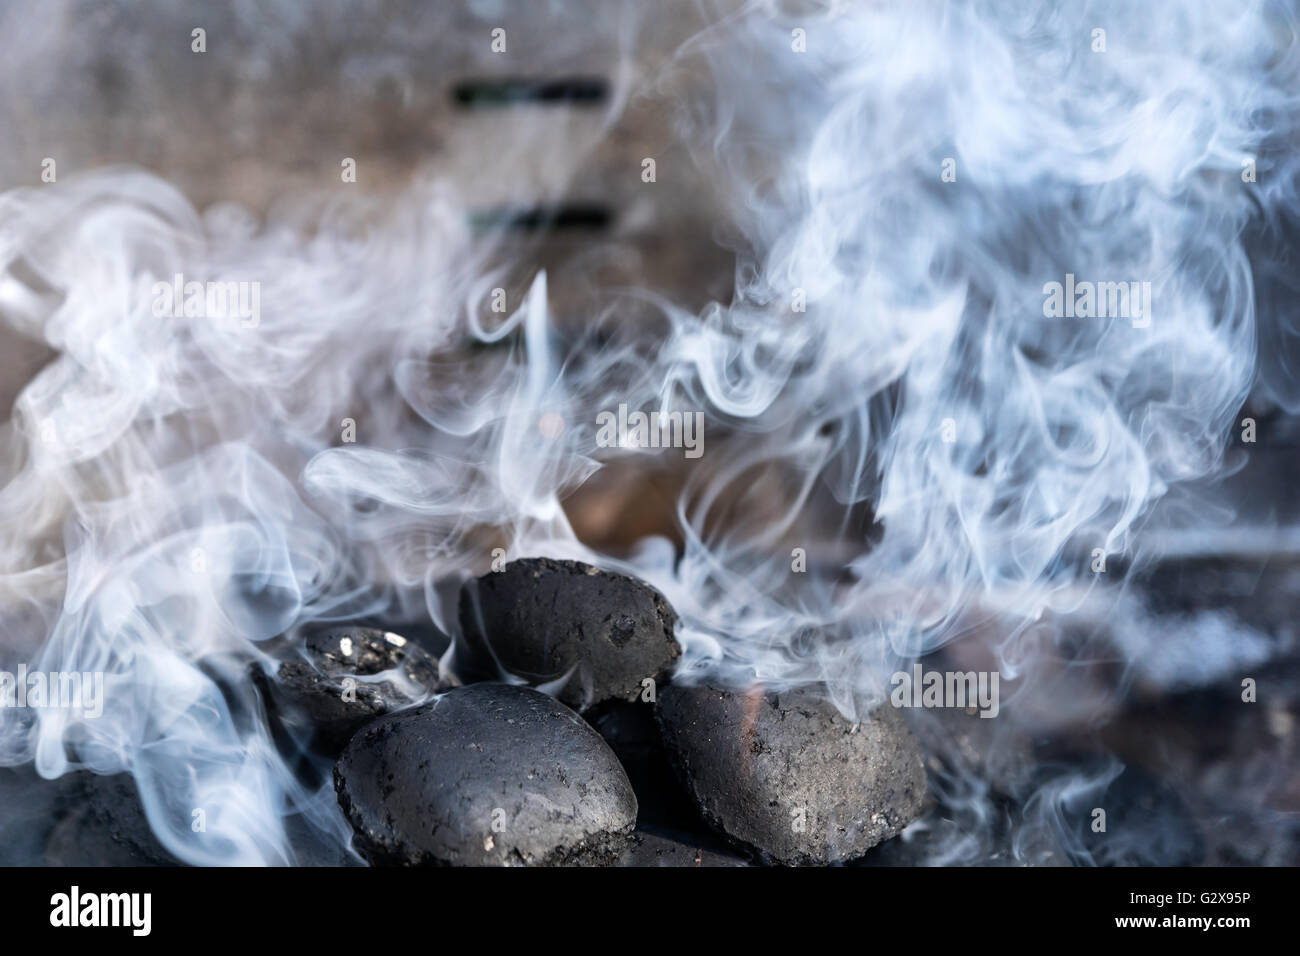 To light  coals in a barbecue grill with a lot of smoke - selected focus, narrow depth of field Stock Photo